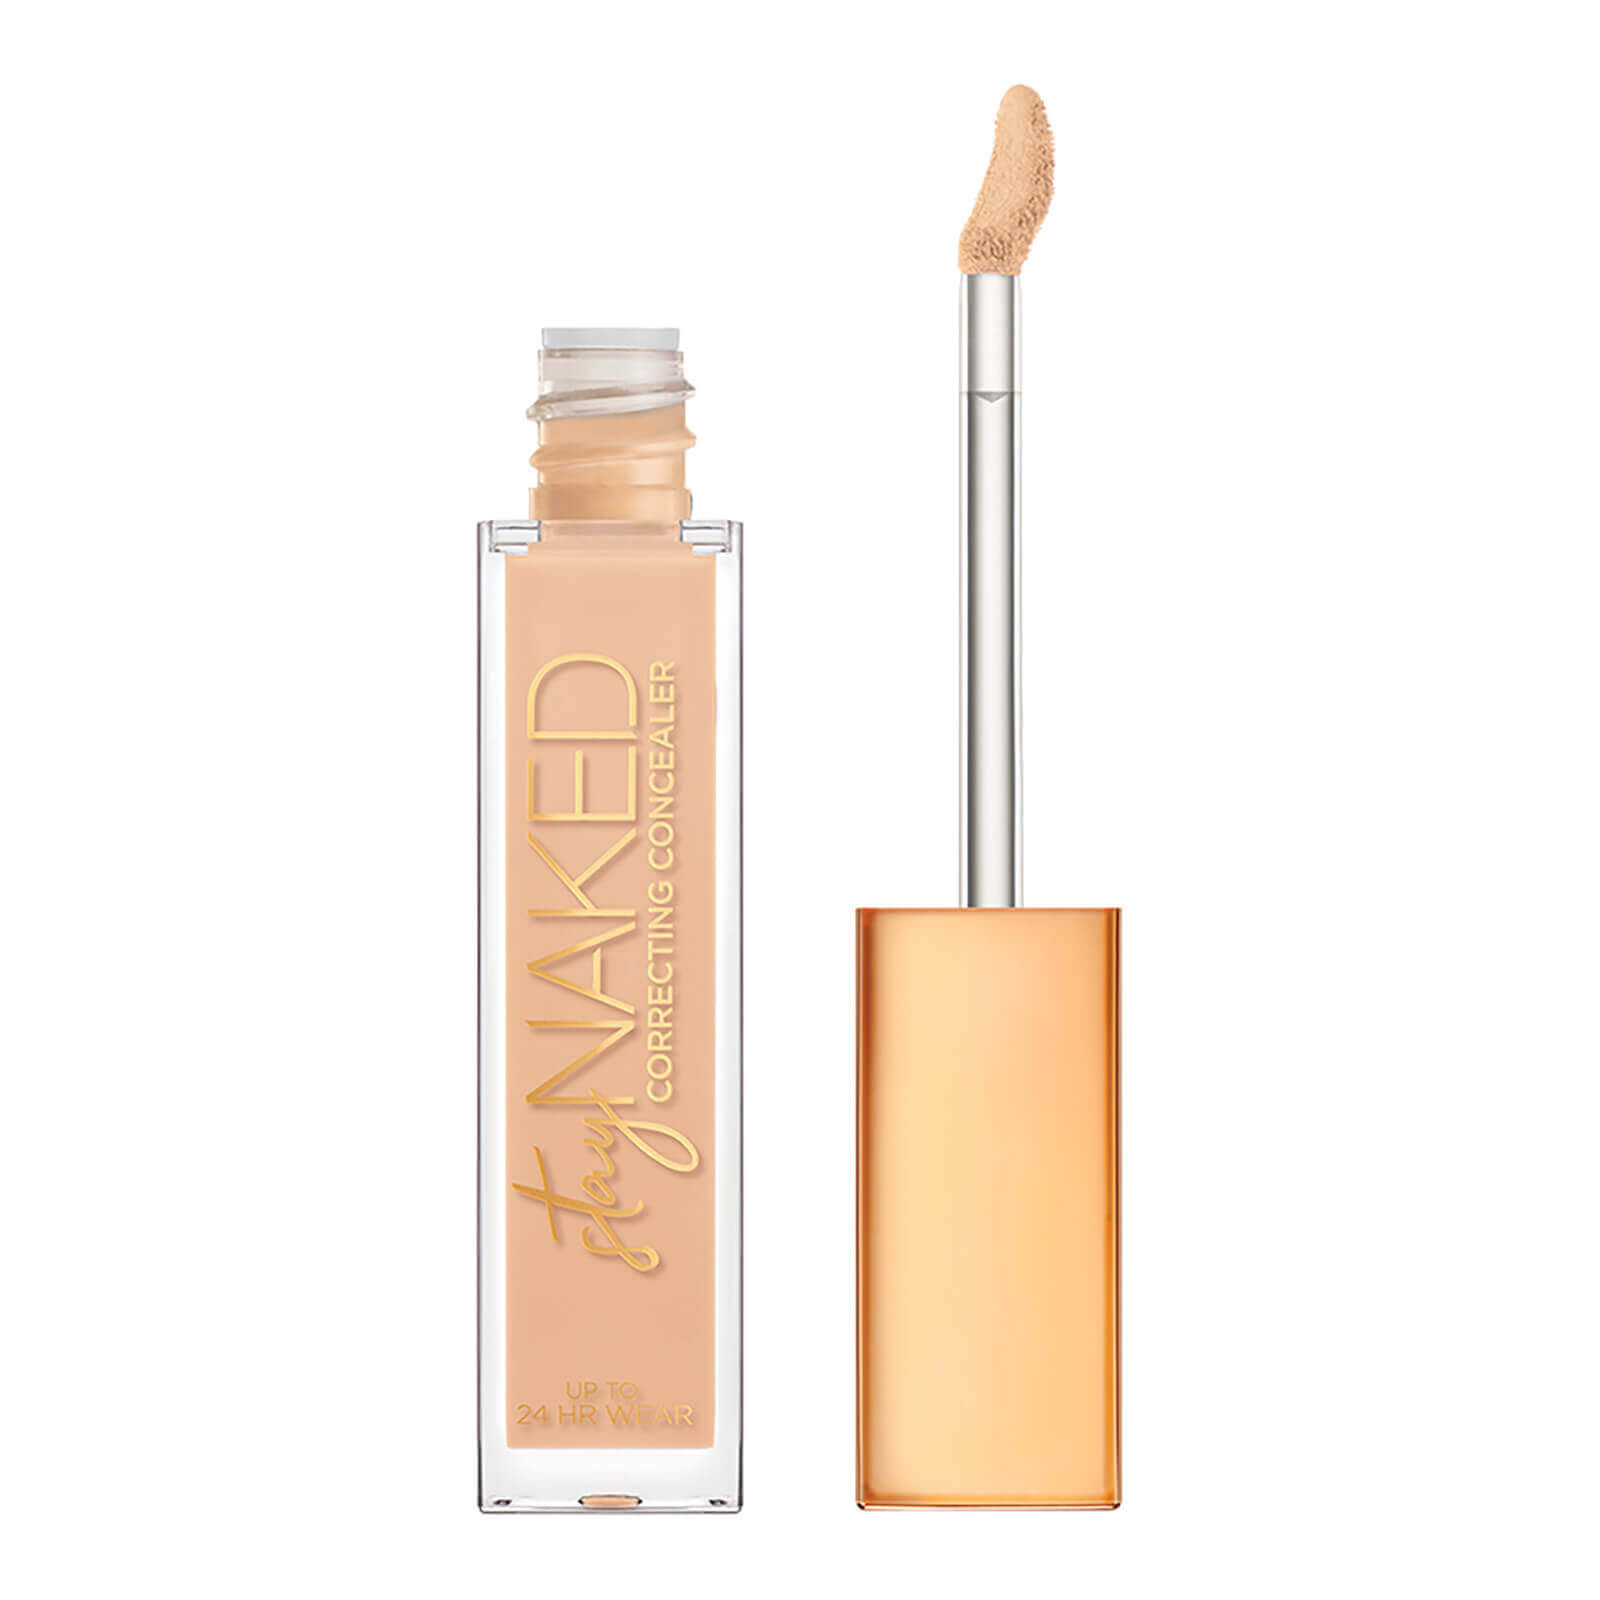 The 5 Best Concealers For A Brightening Effect